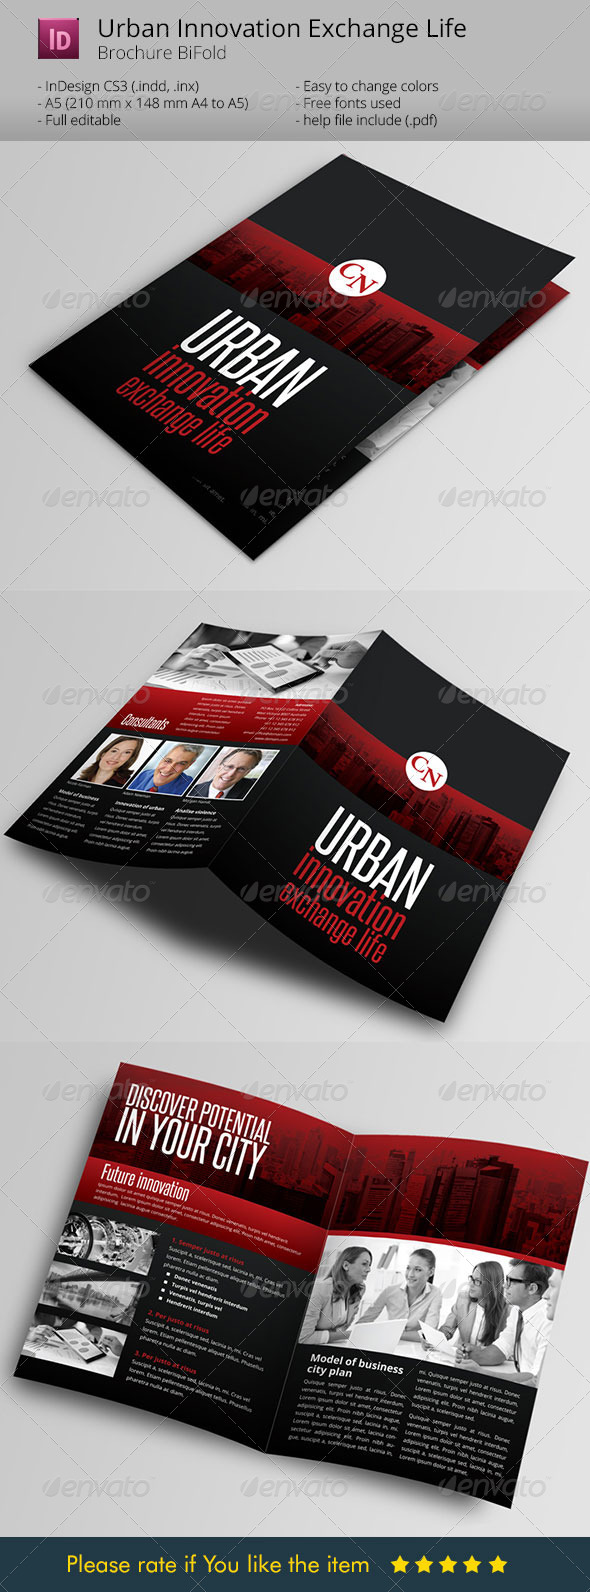 Urban Innovation exchange life Broshure Template - Informational Brochures